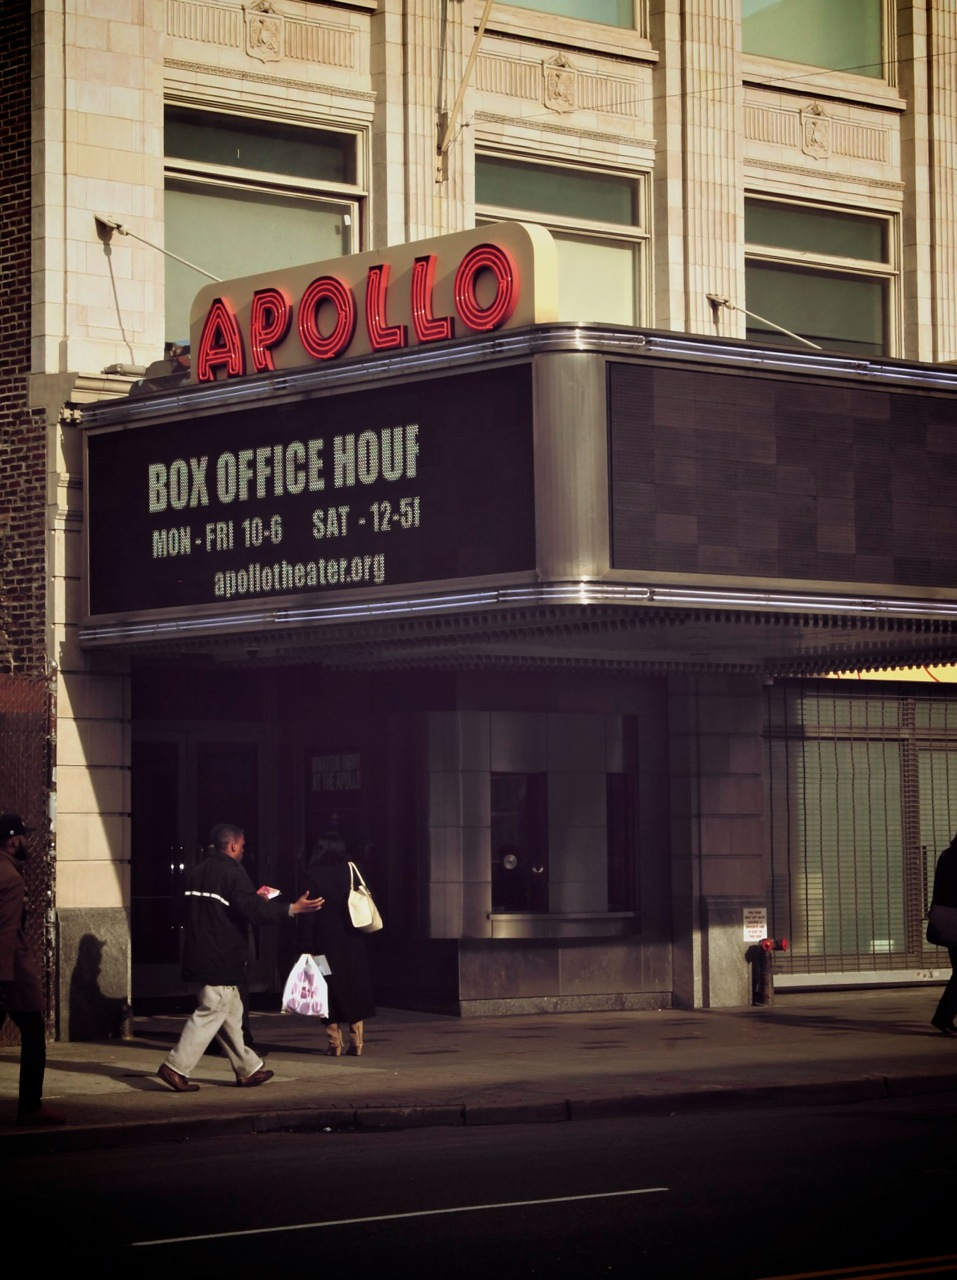 Apollo Theatre Harlem New York